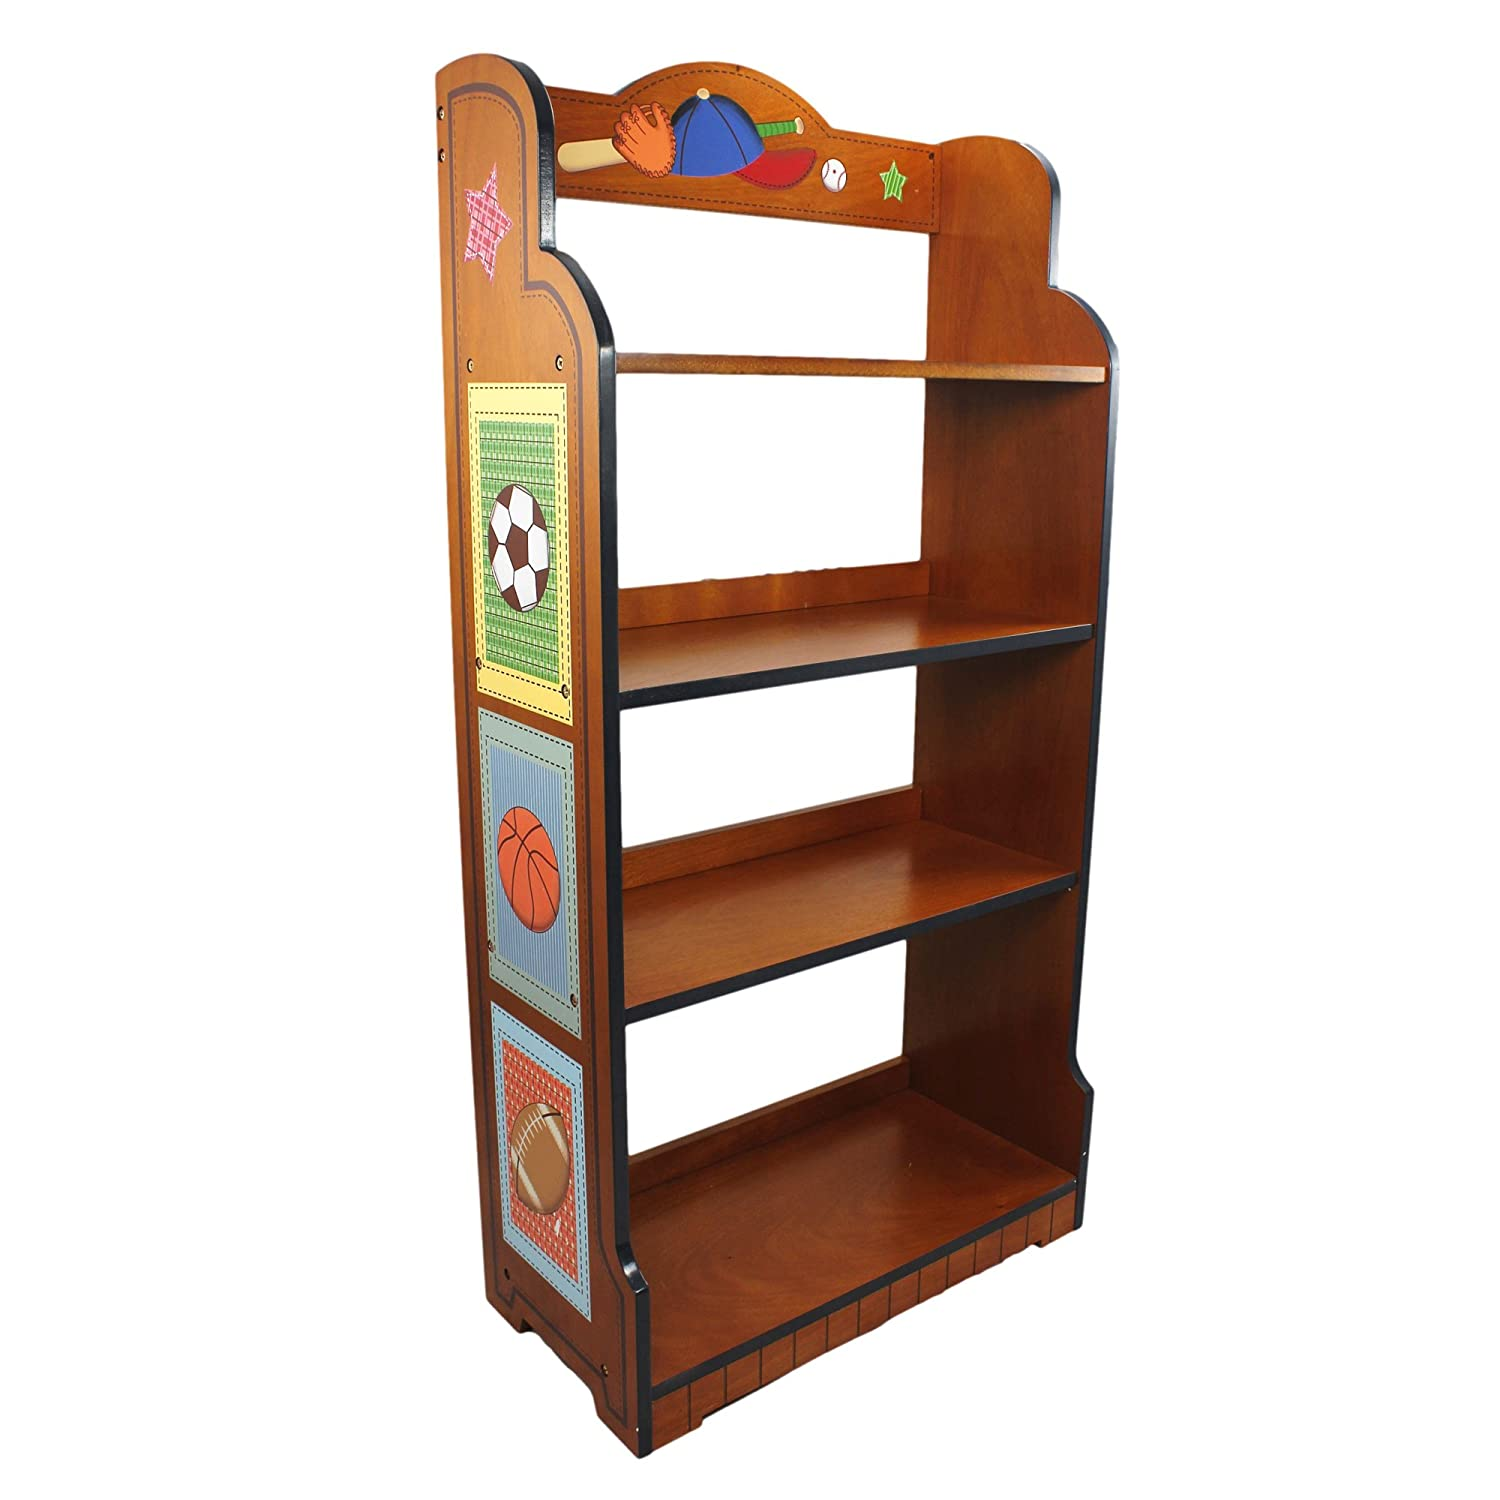 amazon corona drawer bookshelf bookcase picture home collection of rack lords with tardis cd bookcases worthy discount com a dvd sale fanboy uk wood time doorsdvd co for